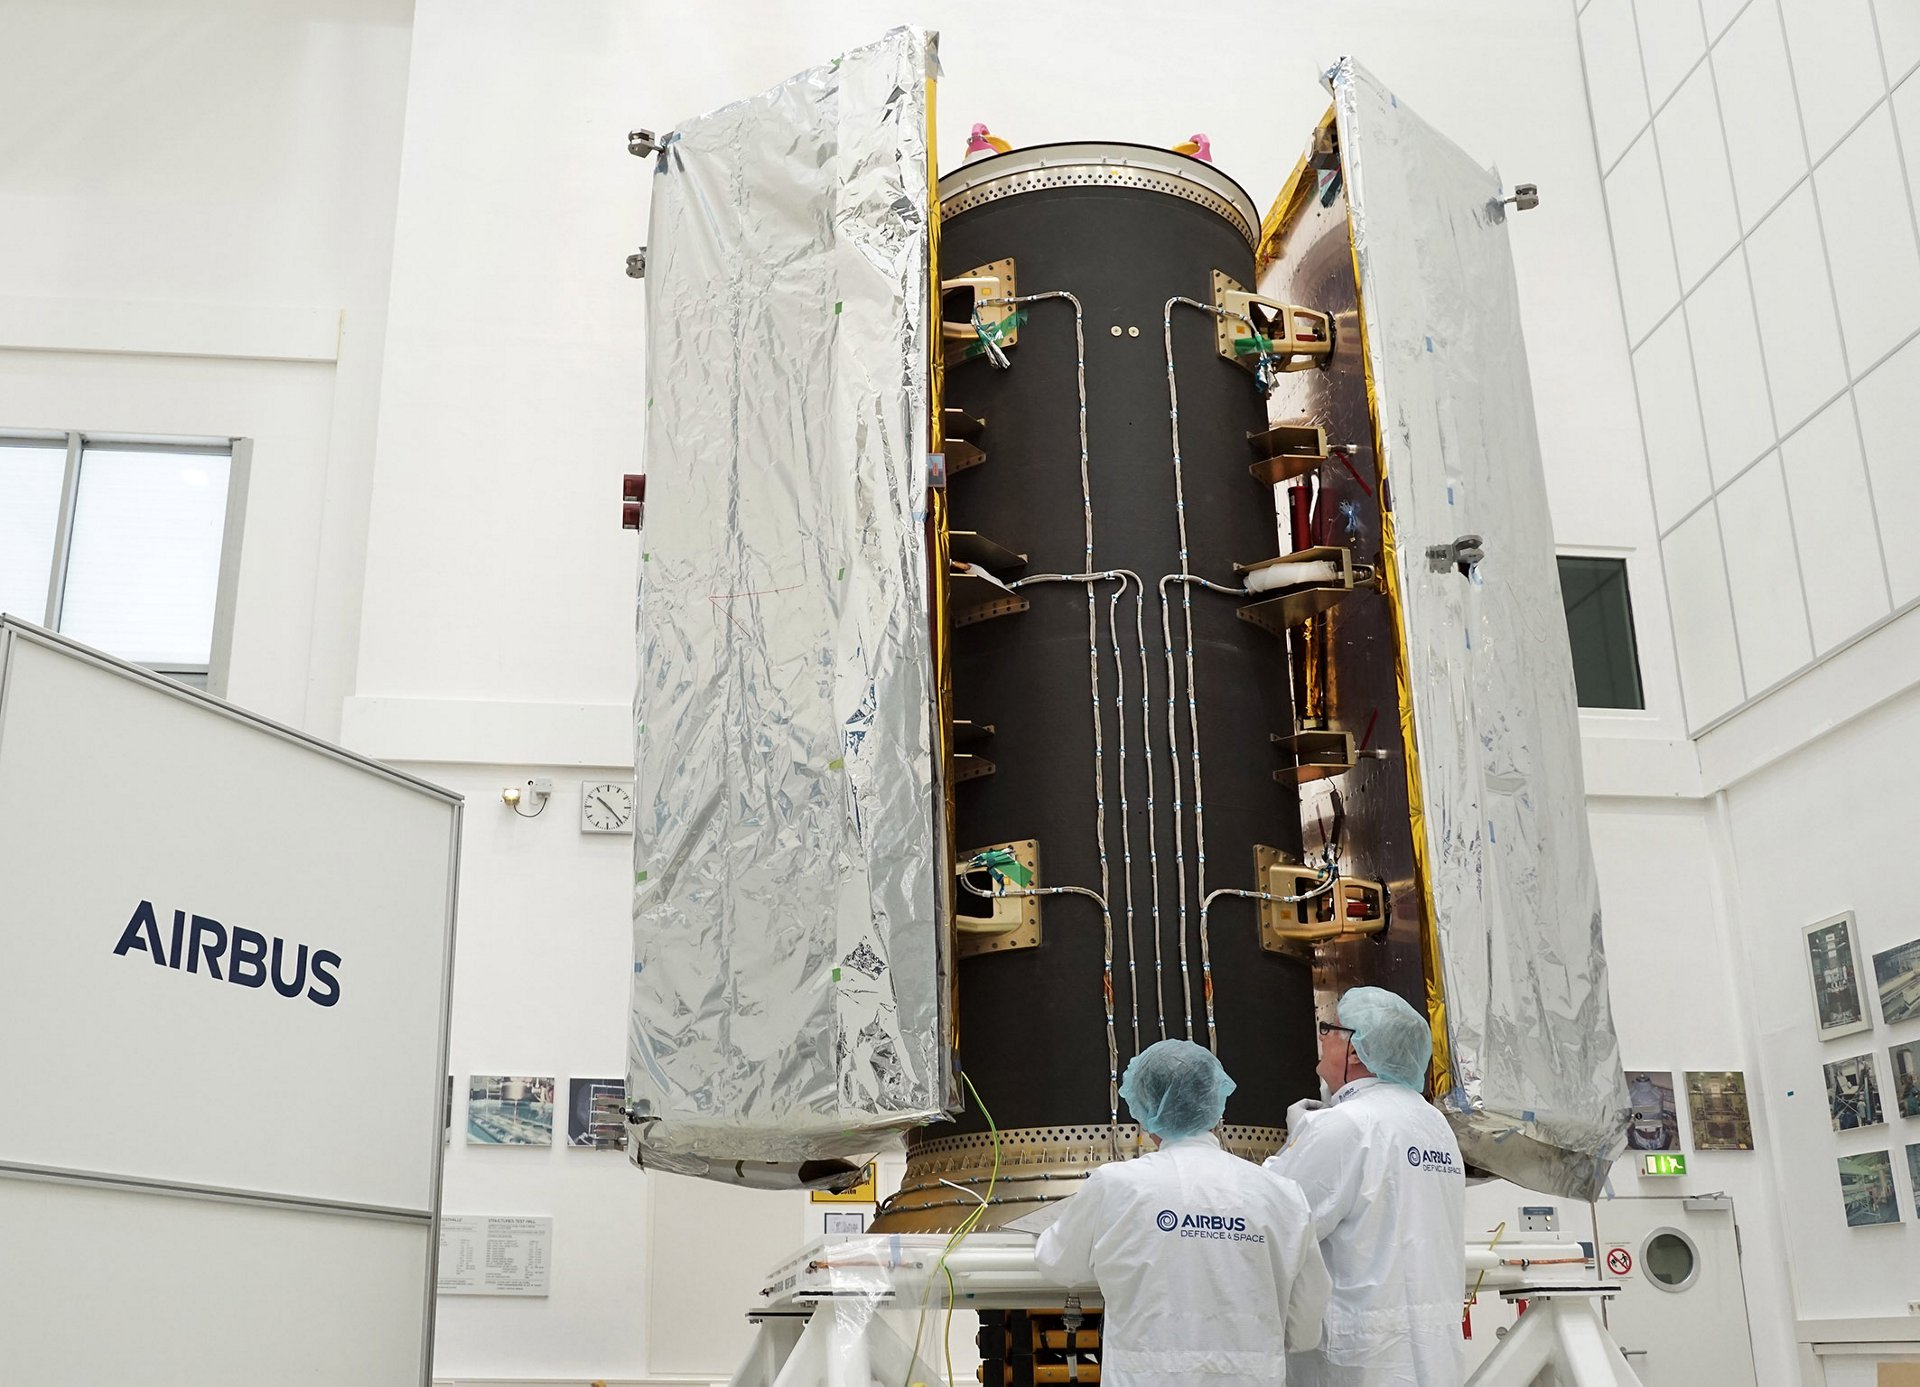 Airbus successfully tests Dispenser Structure for GRACE-FO satellites in its clean room in Friedrichshafen